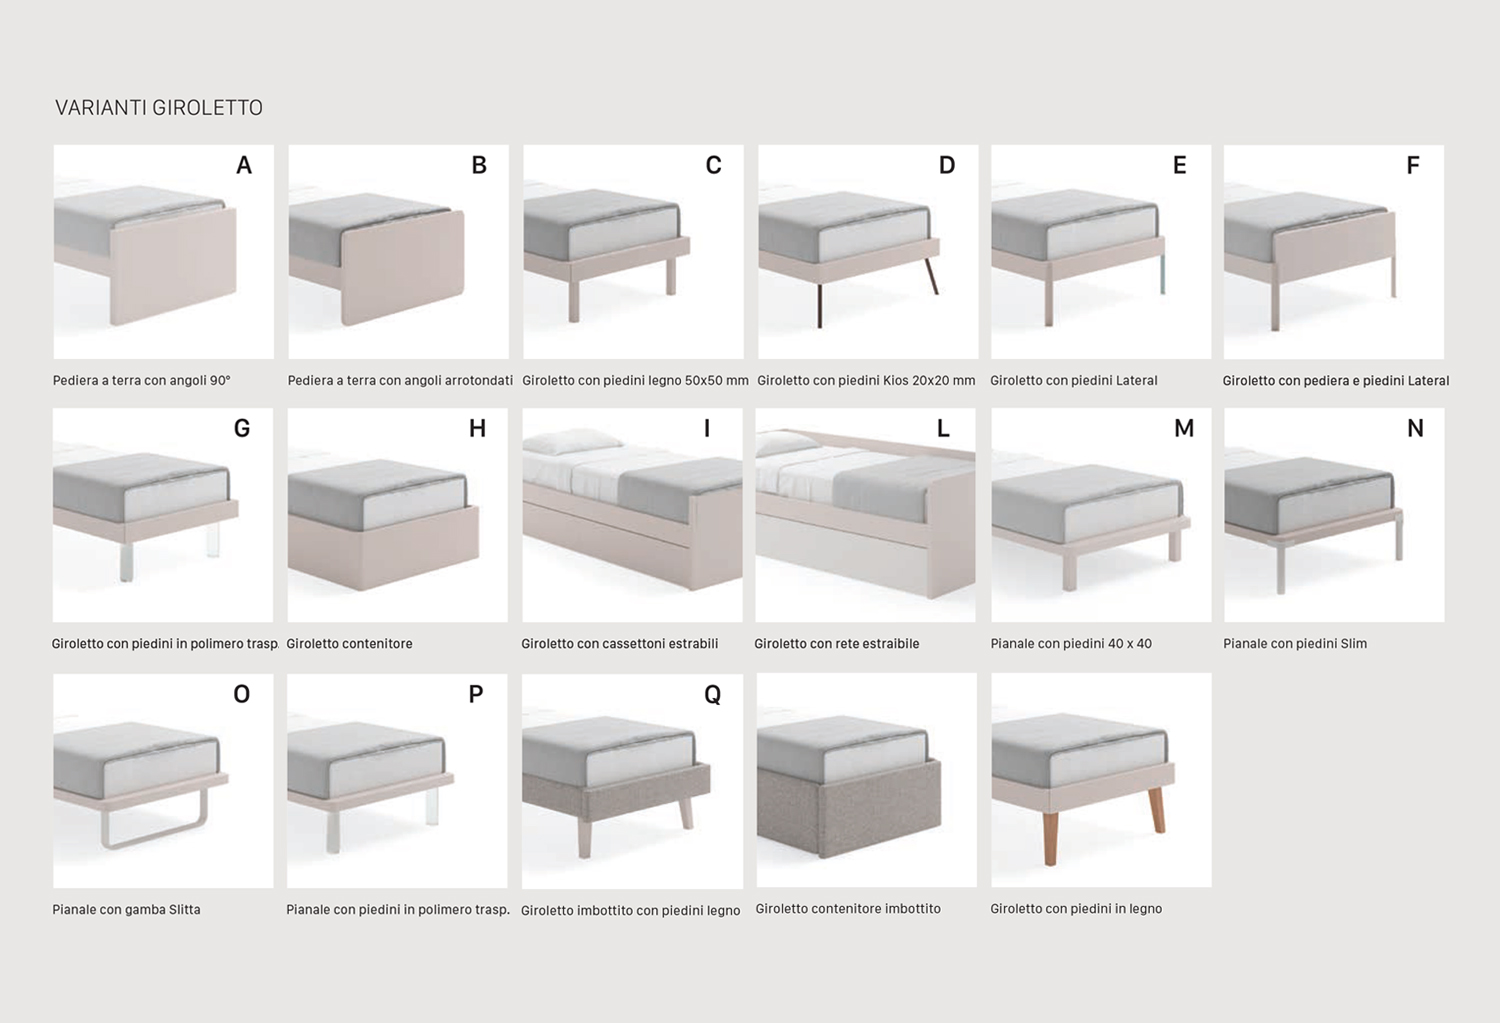 Frame and leg types available on the Archè bed are the B - C - D - E - F - G